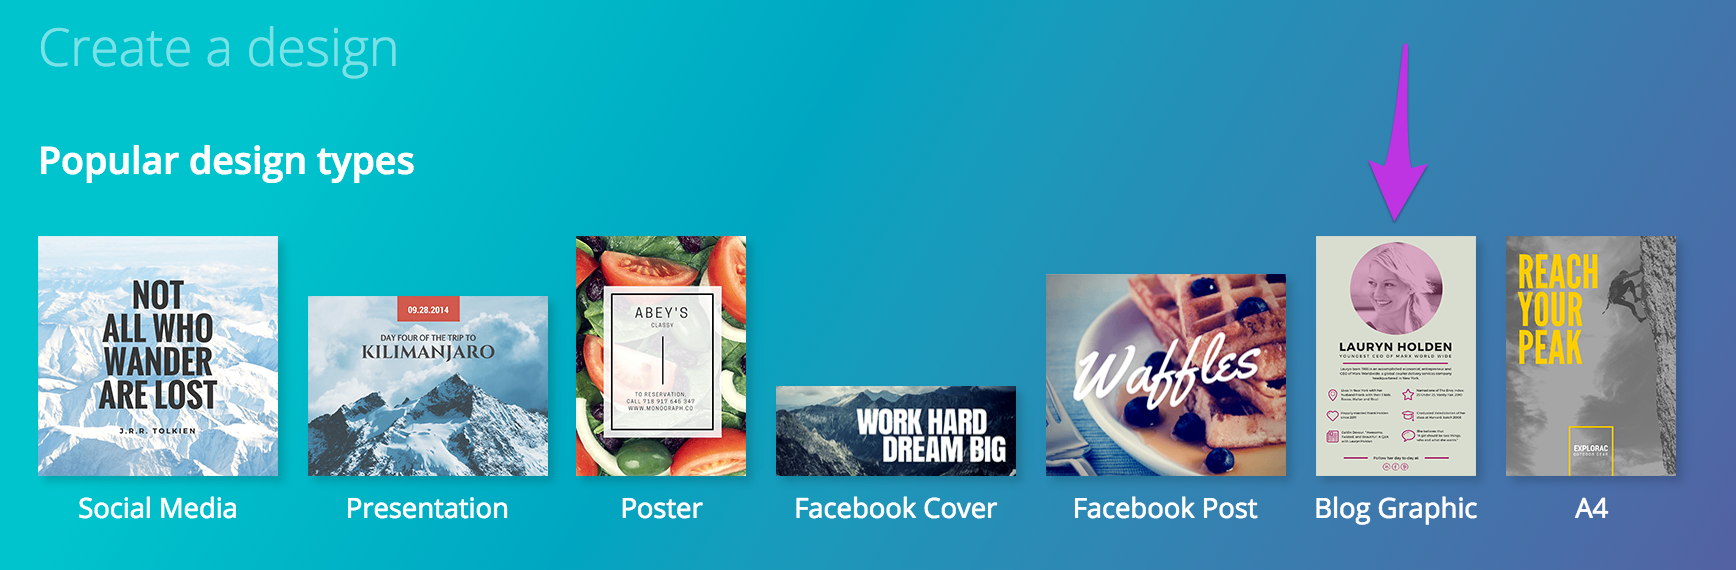 Canva Blog Graphic Size